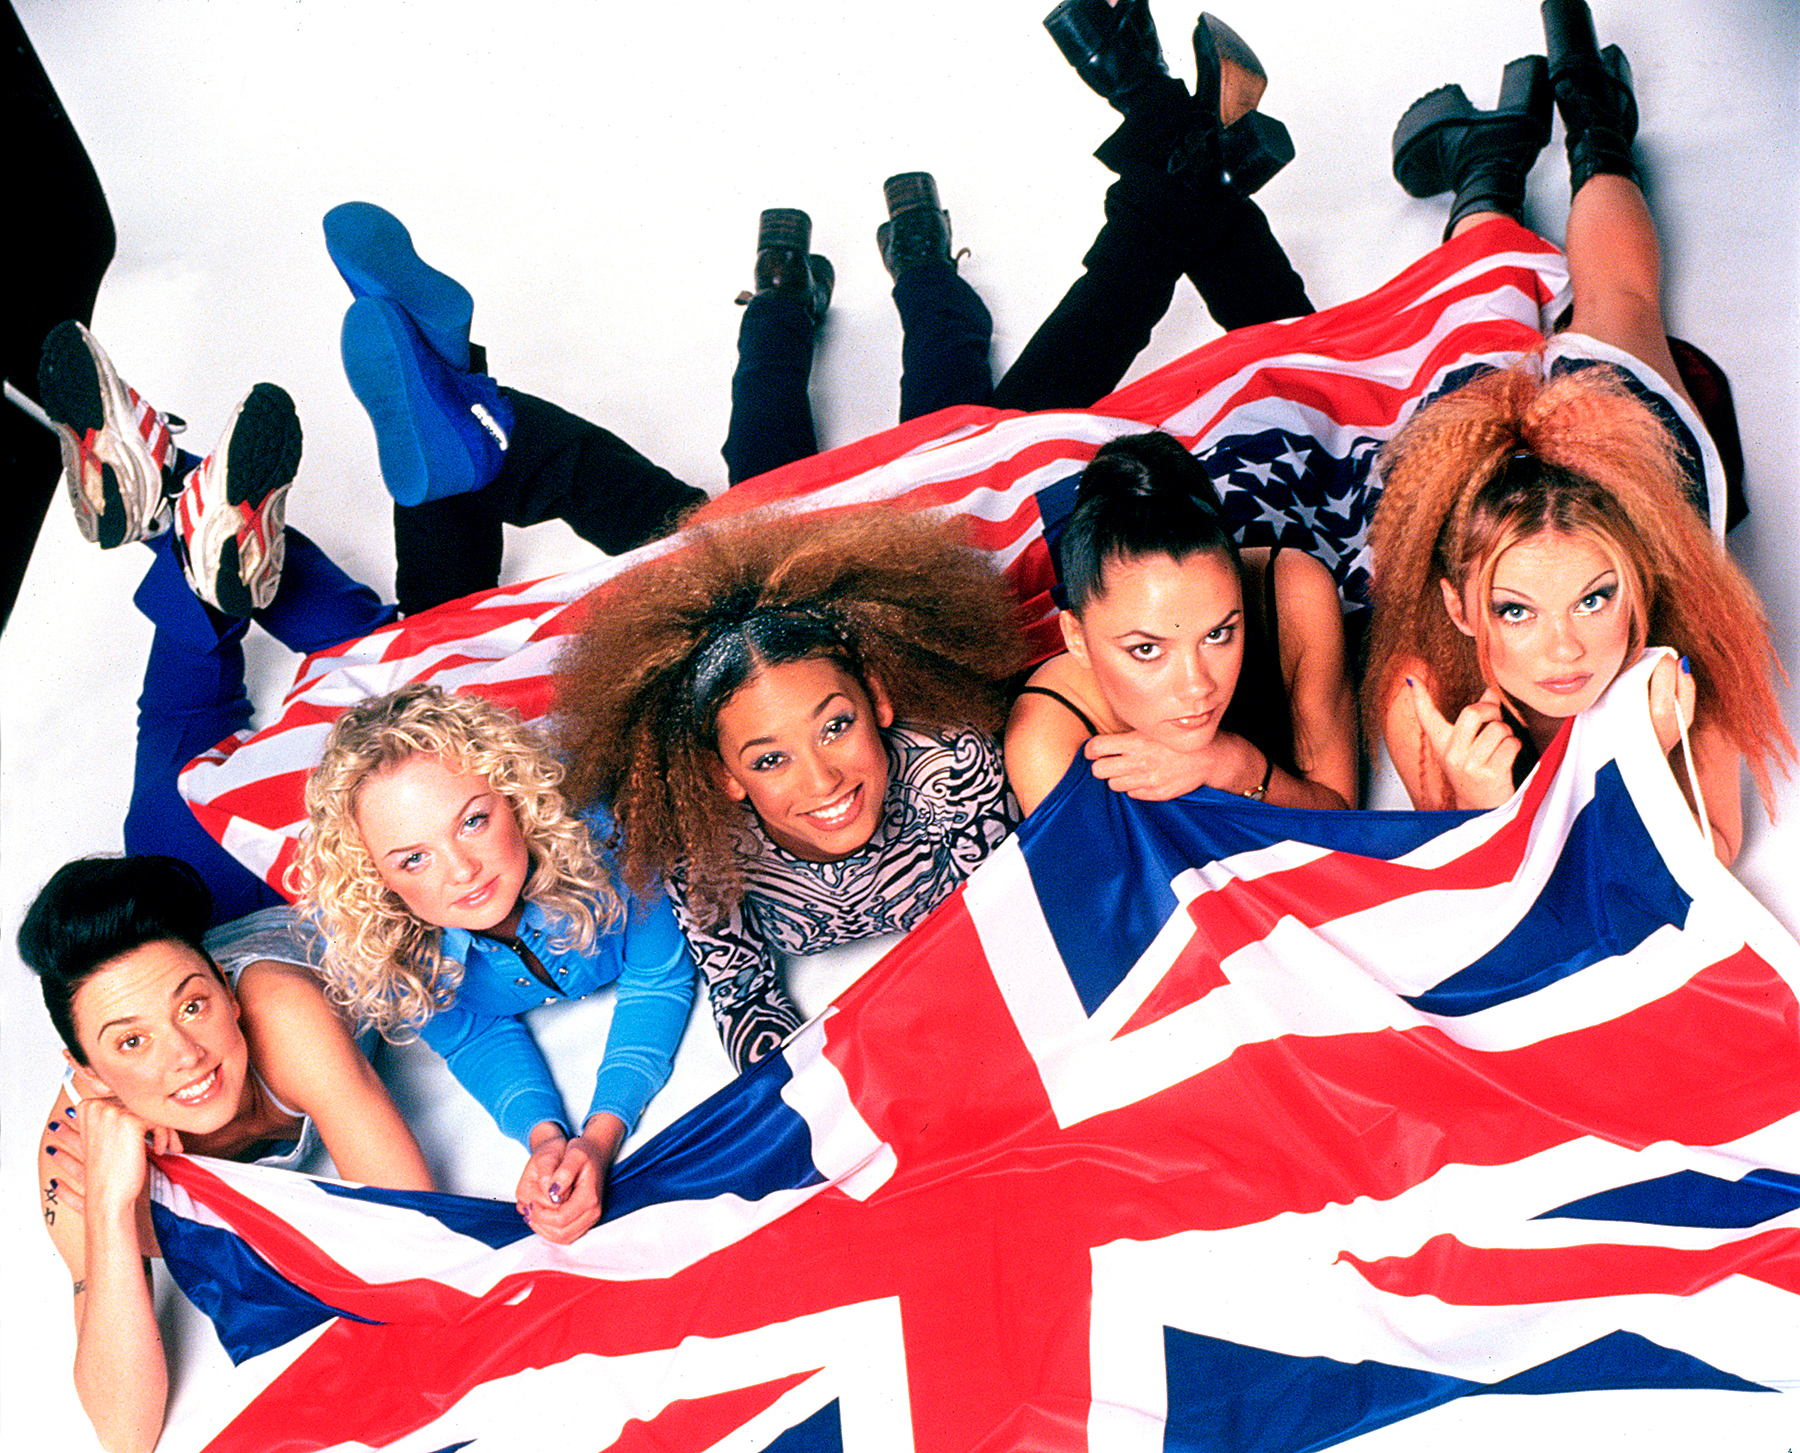 The Spice Girls photographed in February 1997